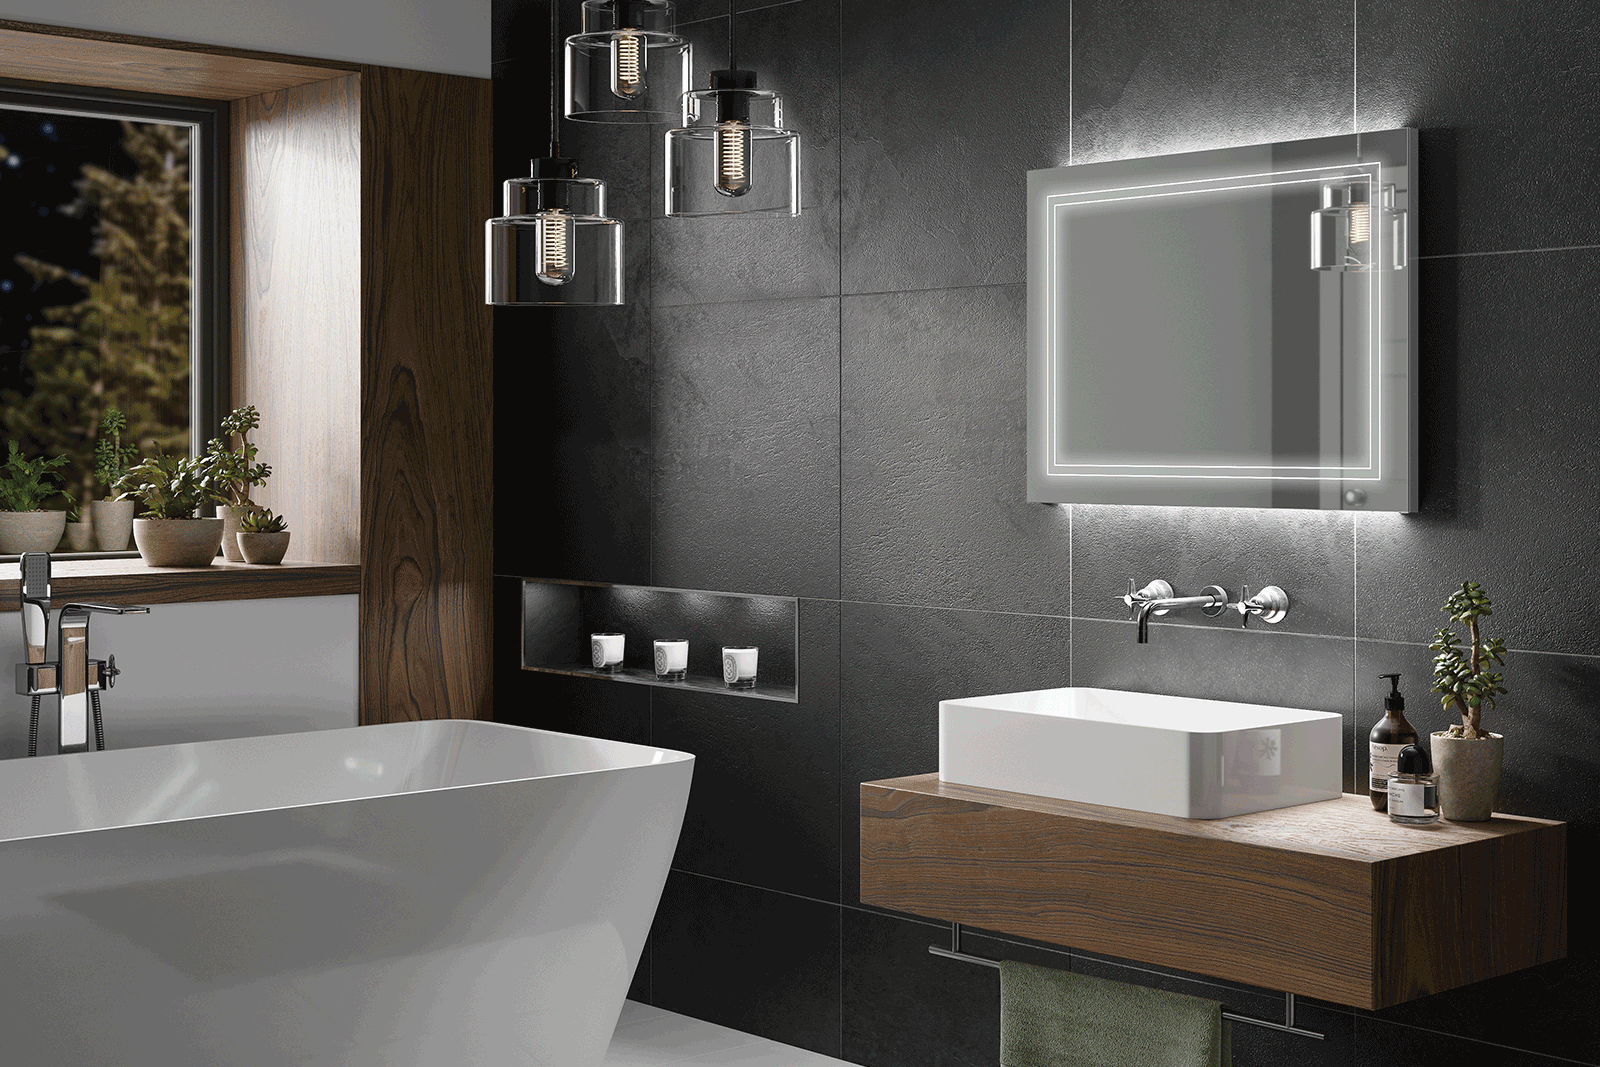 BATHLINE Bathroom Design | Bathrooms Northern Ireland ...